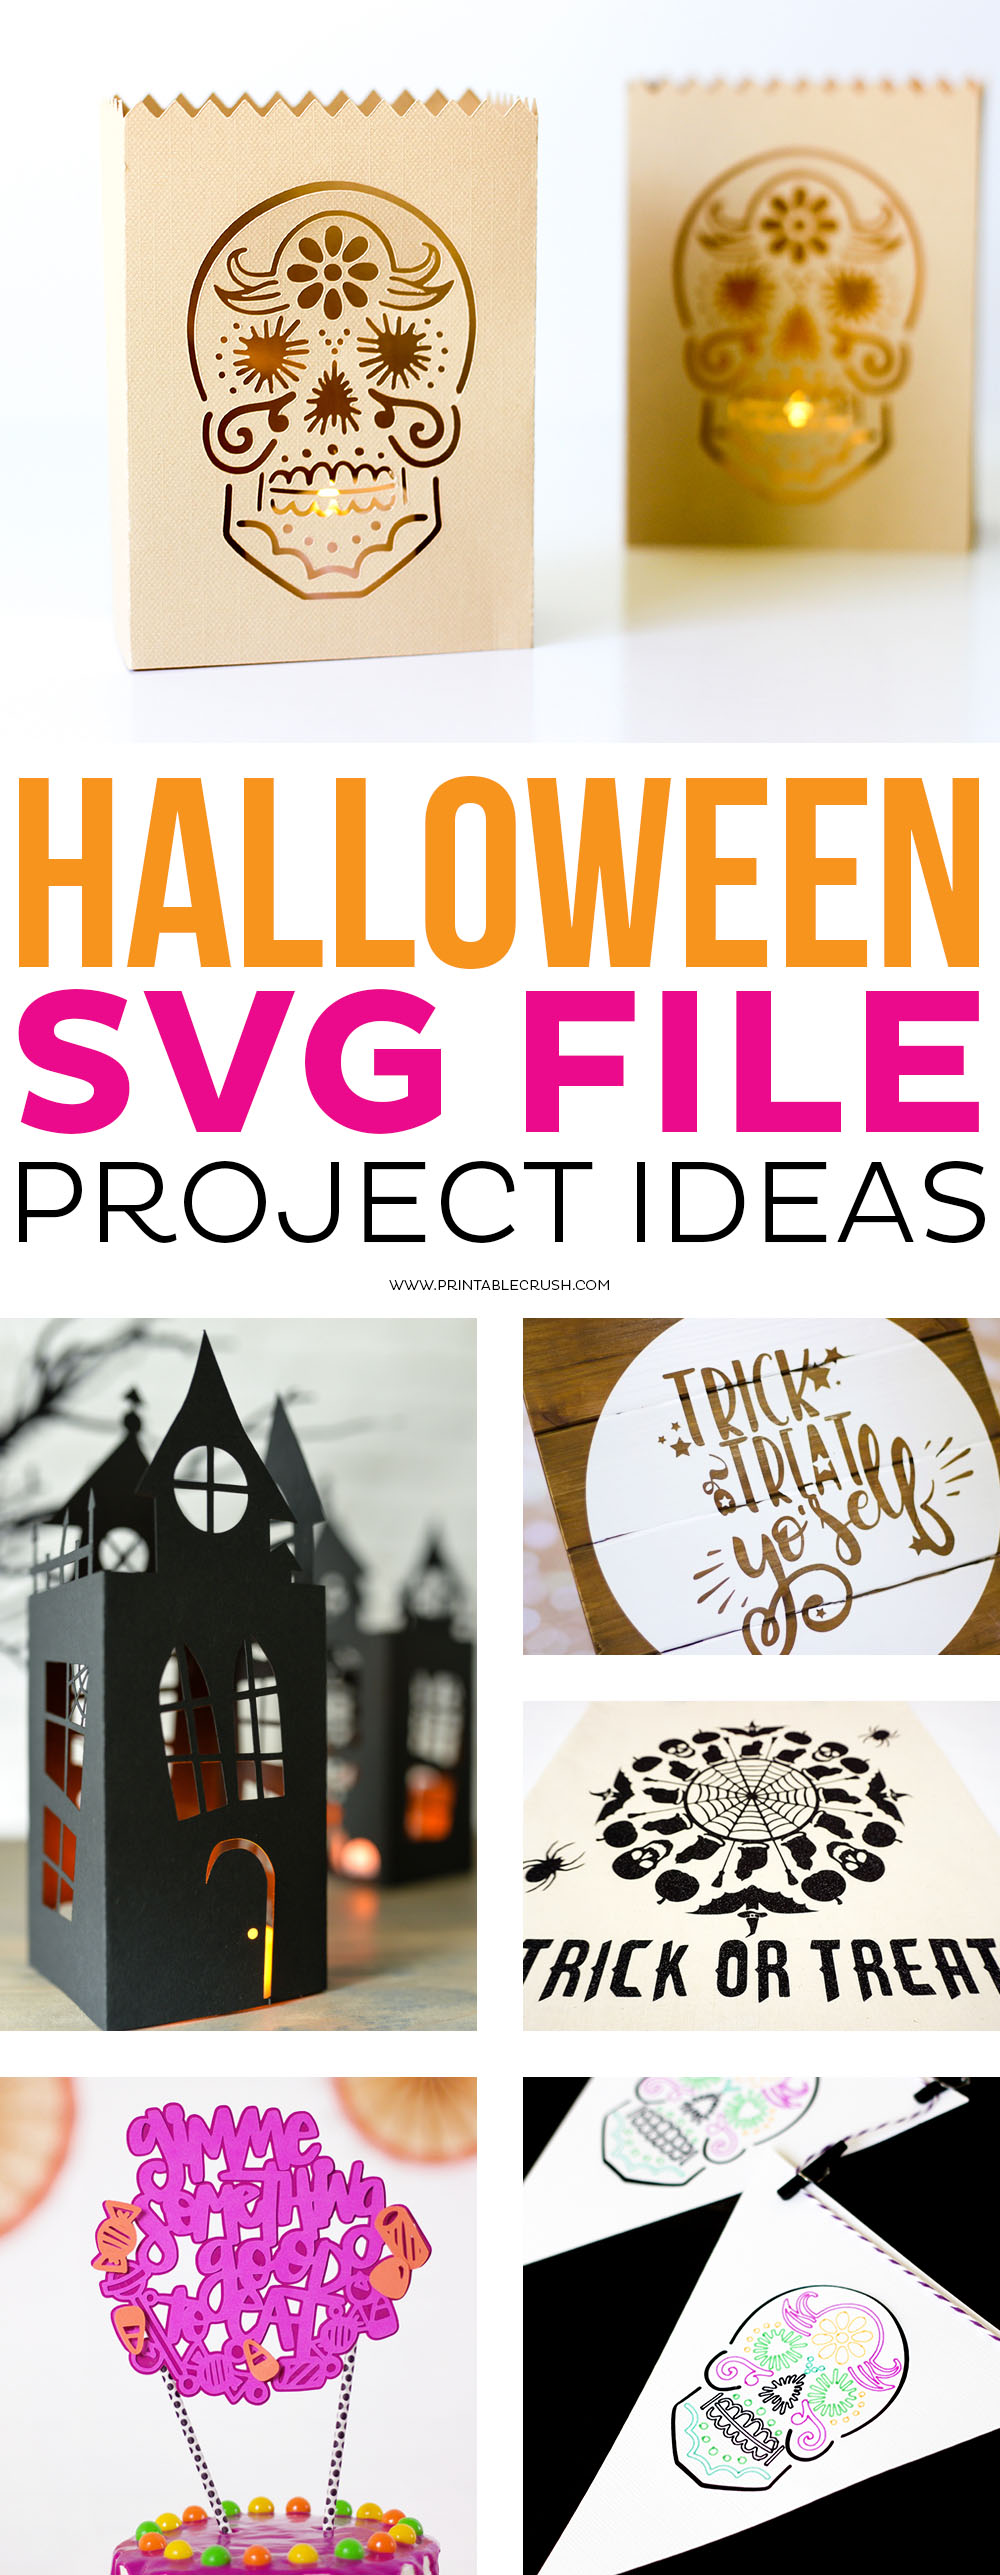 See fun Halloween SVG File Project ideas to help you get ready for Halloween! We've got you covered in Halloween home decor, party ideas, and more! #halloweensvgfiles #halloweencrafts #halloweenprojects #halloweendecor #halloween via @printablecrush